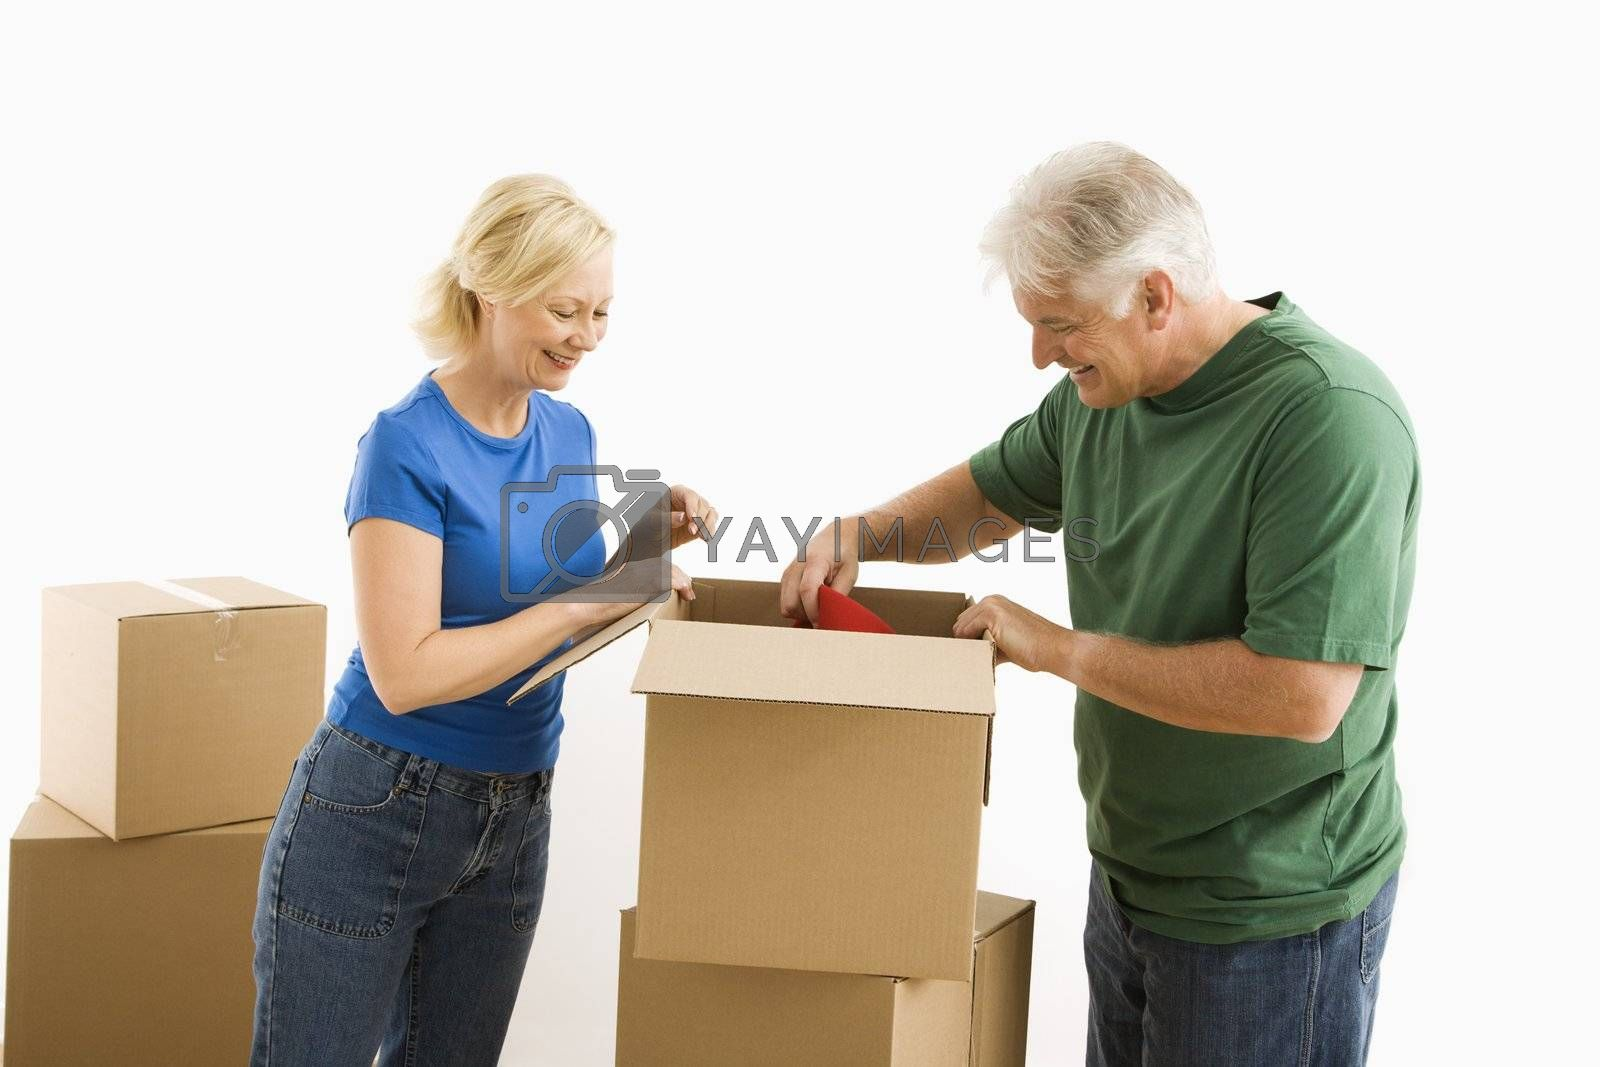 Middle-aged couple packing or unpacking moving boxes.